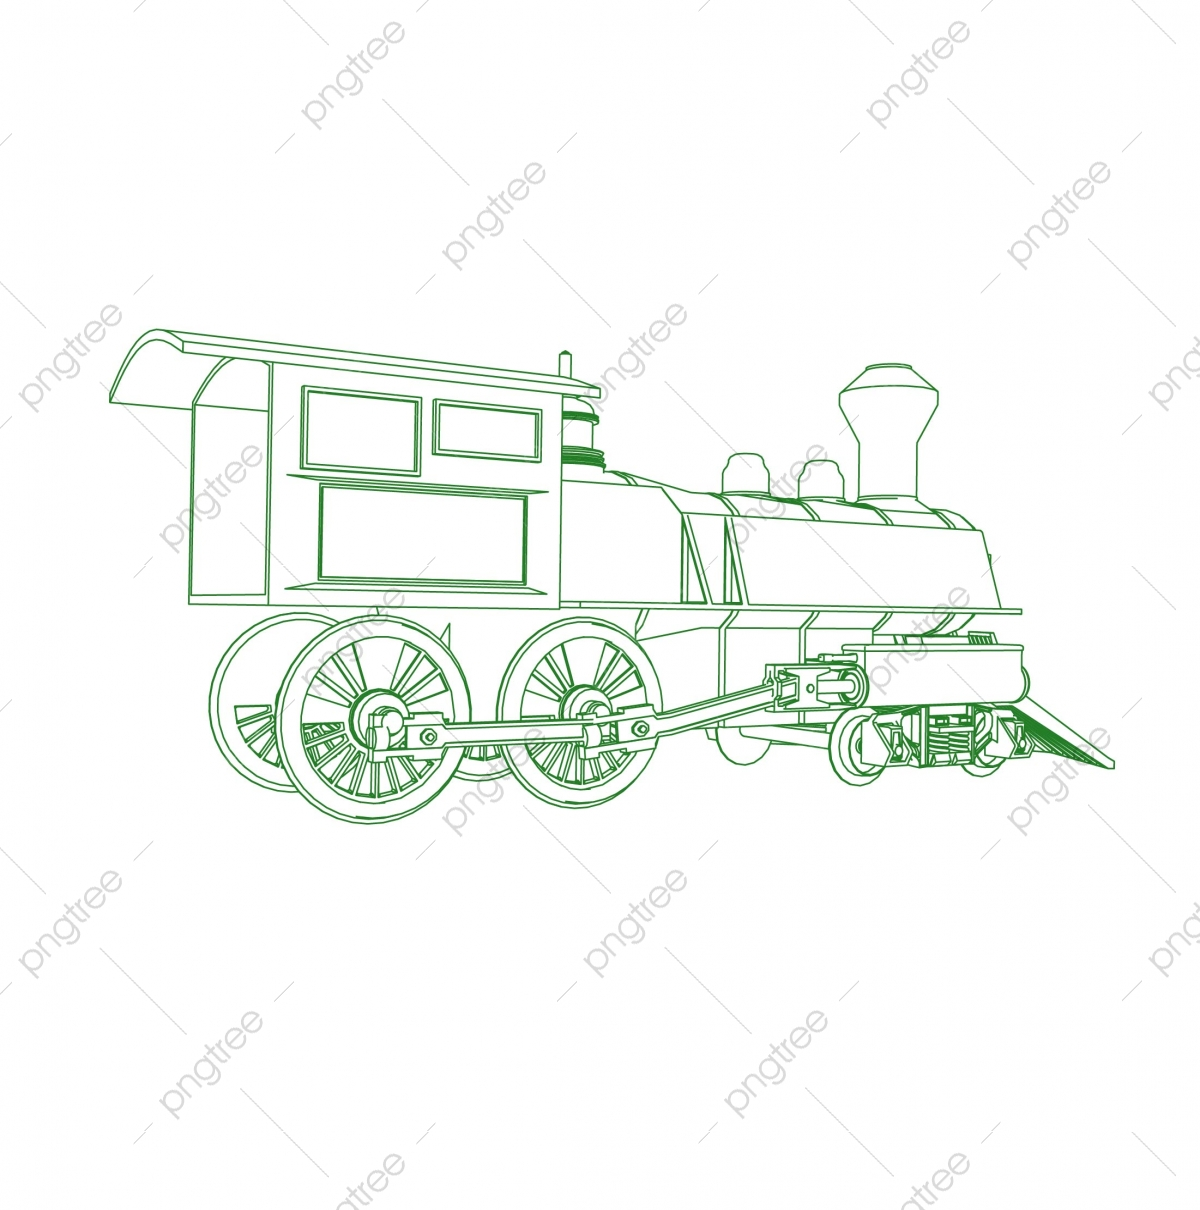 Line Art Of The Train Coloring Page Train Illustration For The